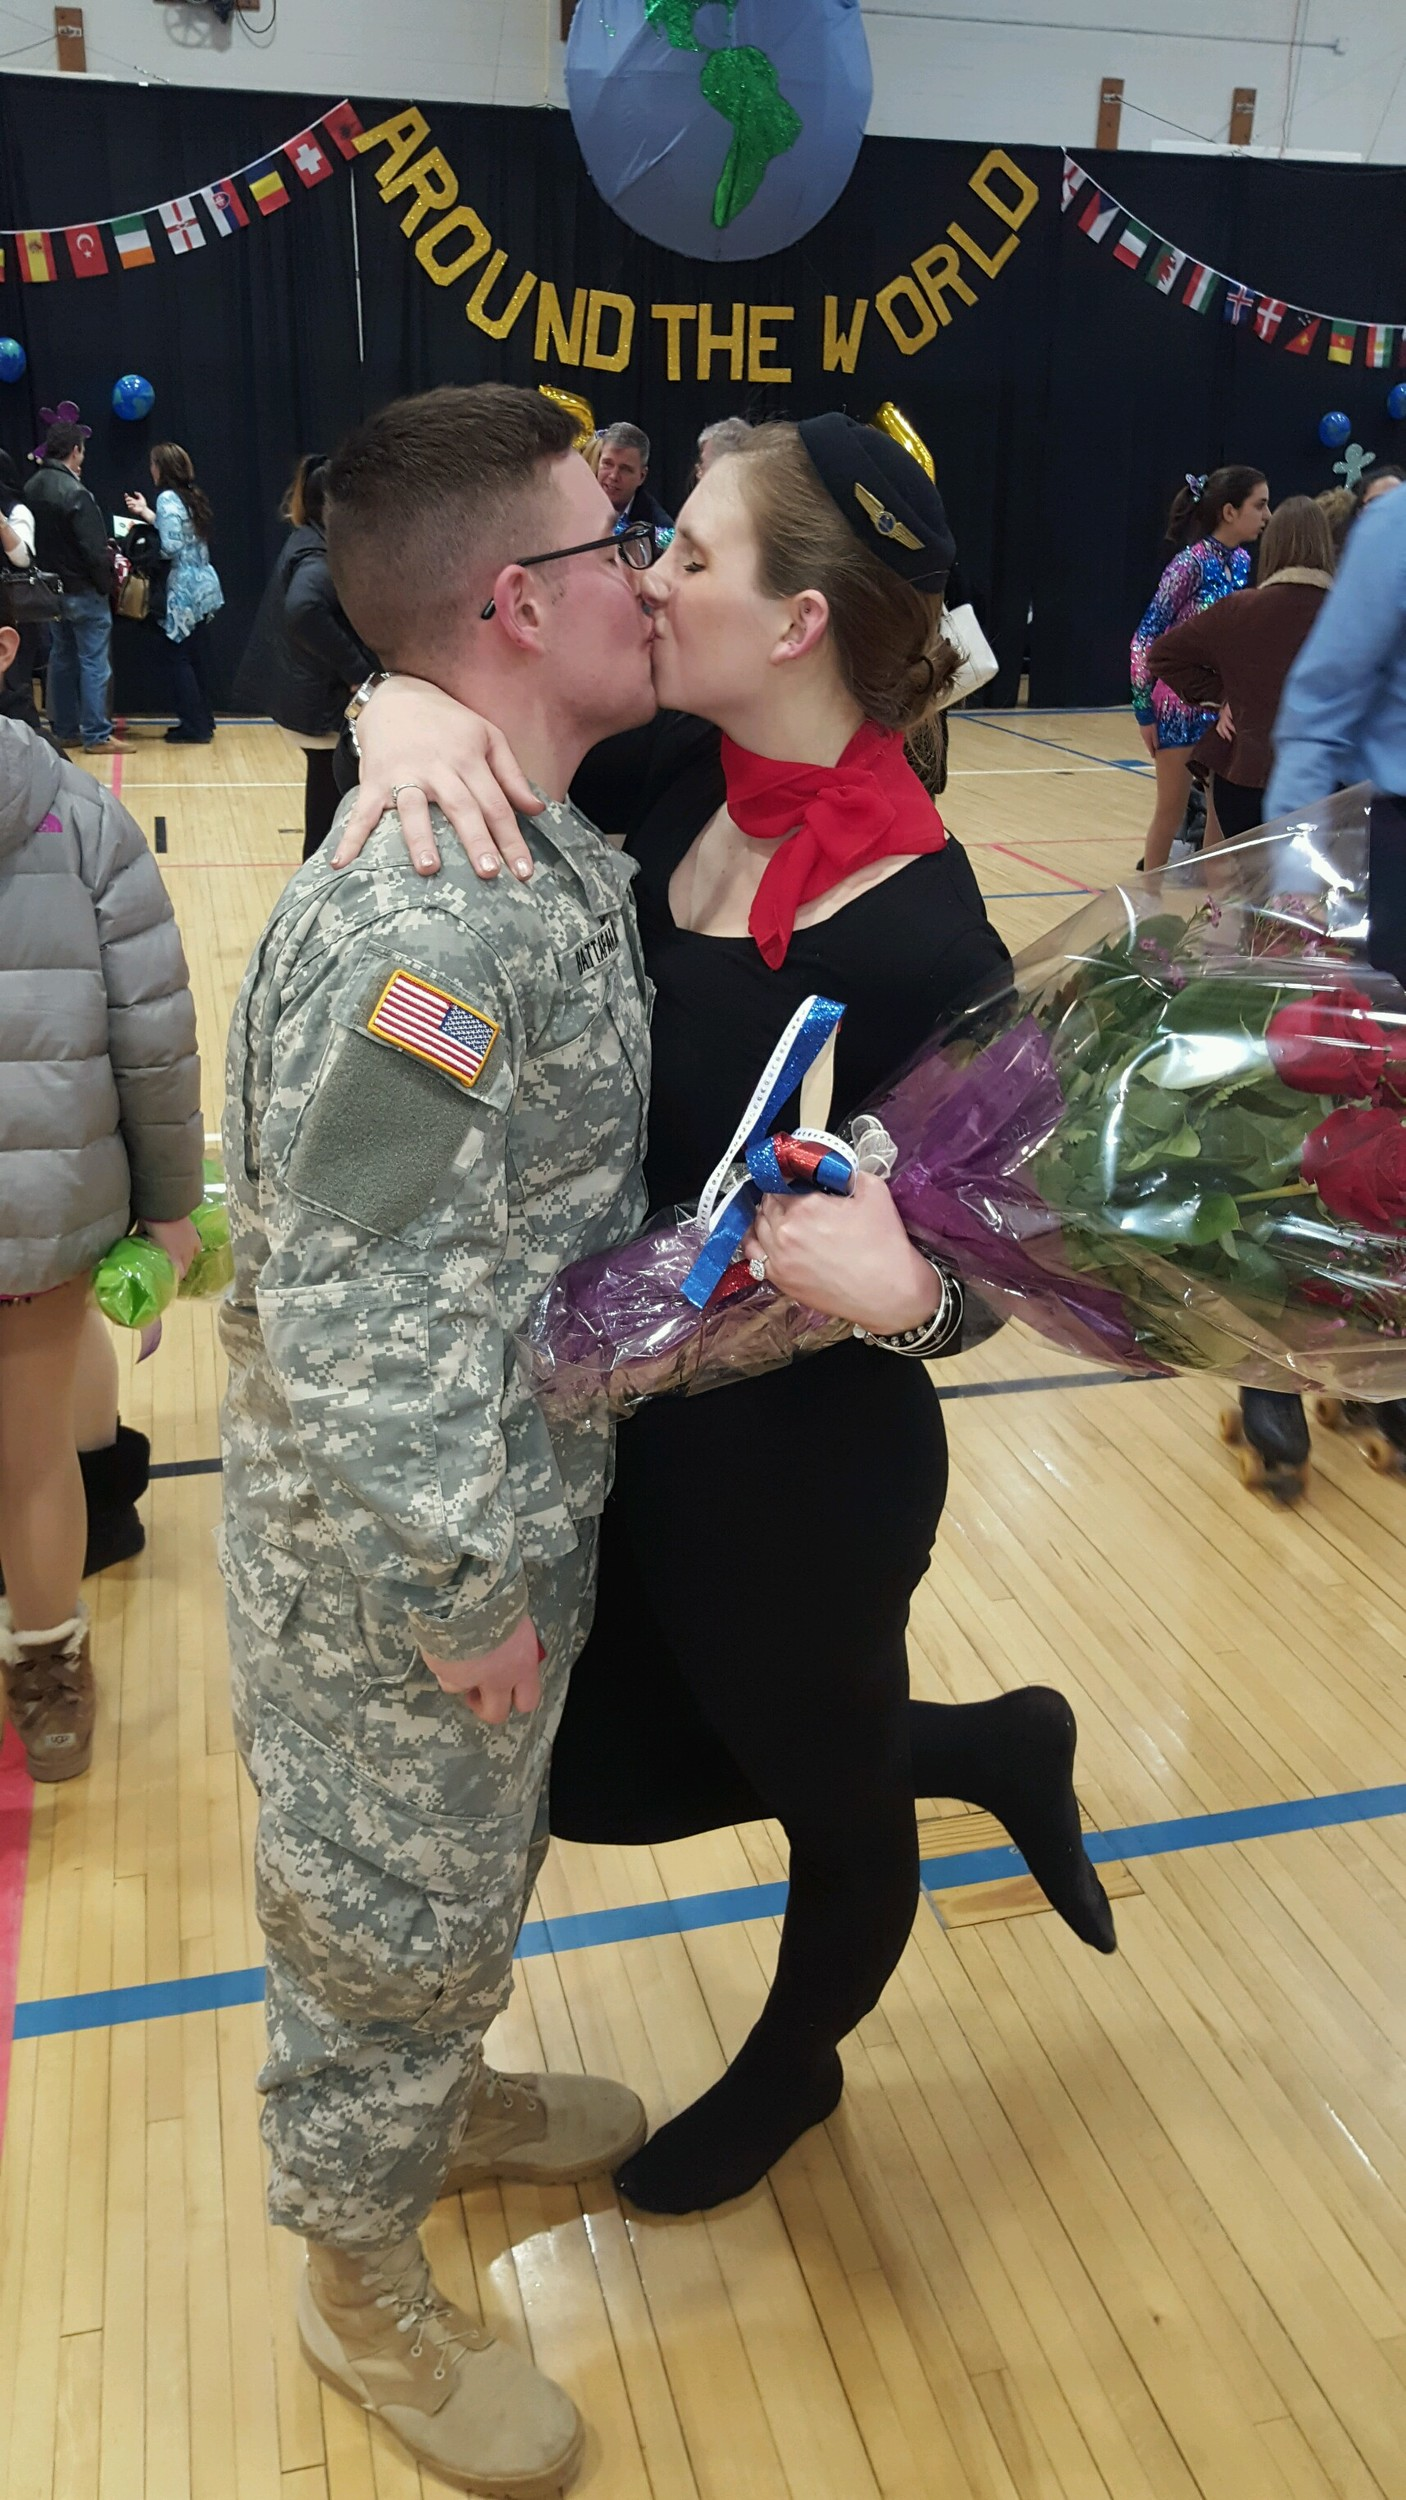 Robert Battafarano and Michelle Troici shared a kiss shortly after he proposed to her during the 54th annual Roller Skating Show at Oceanside Middle School on March 3.